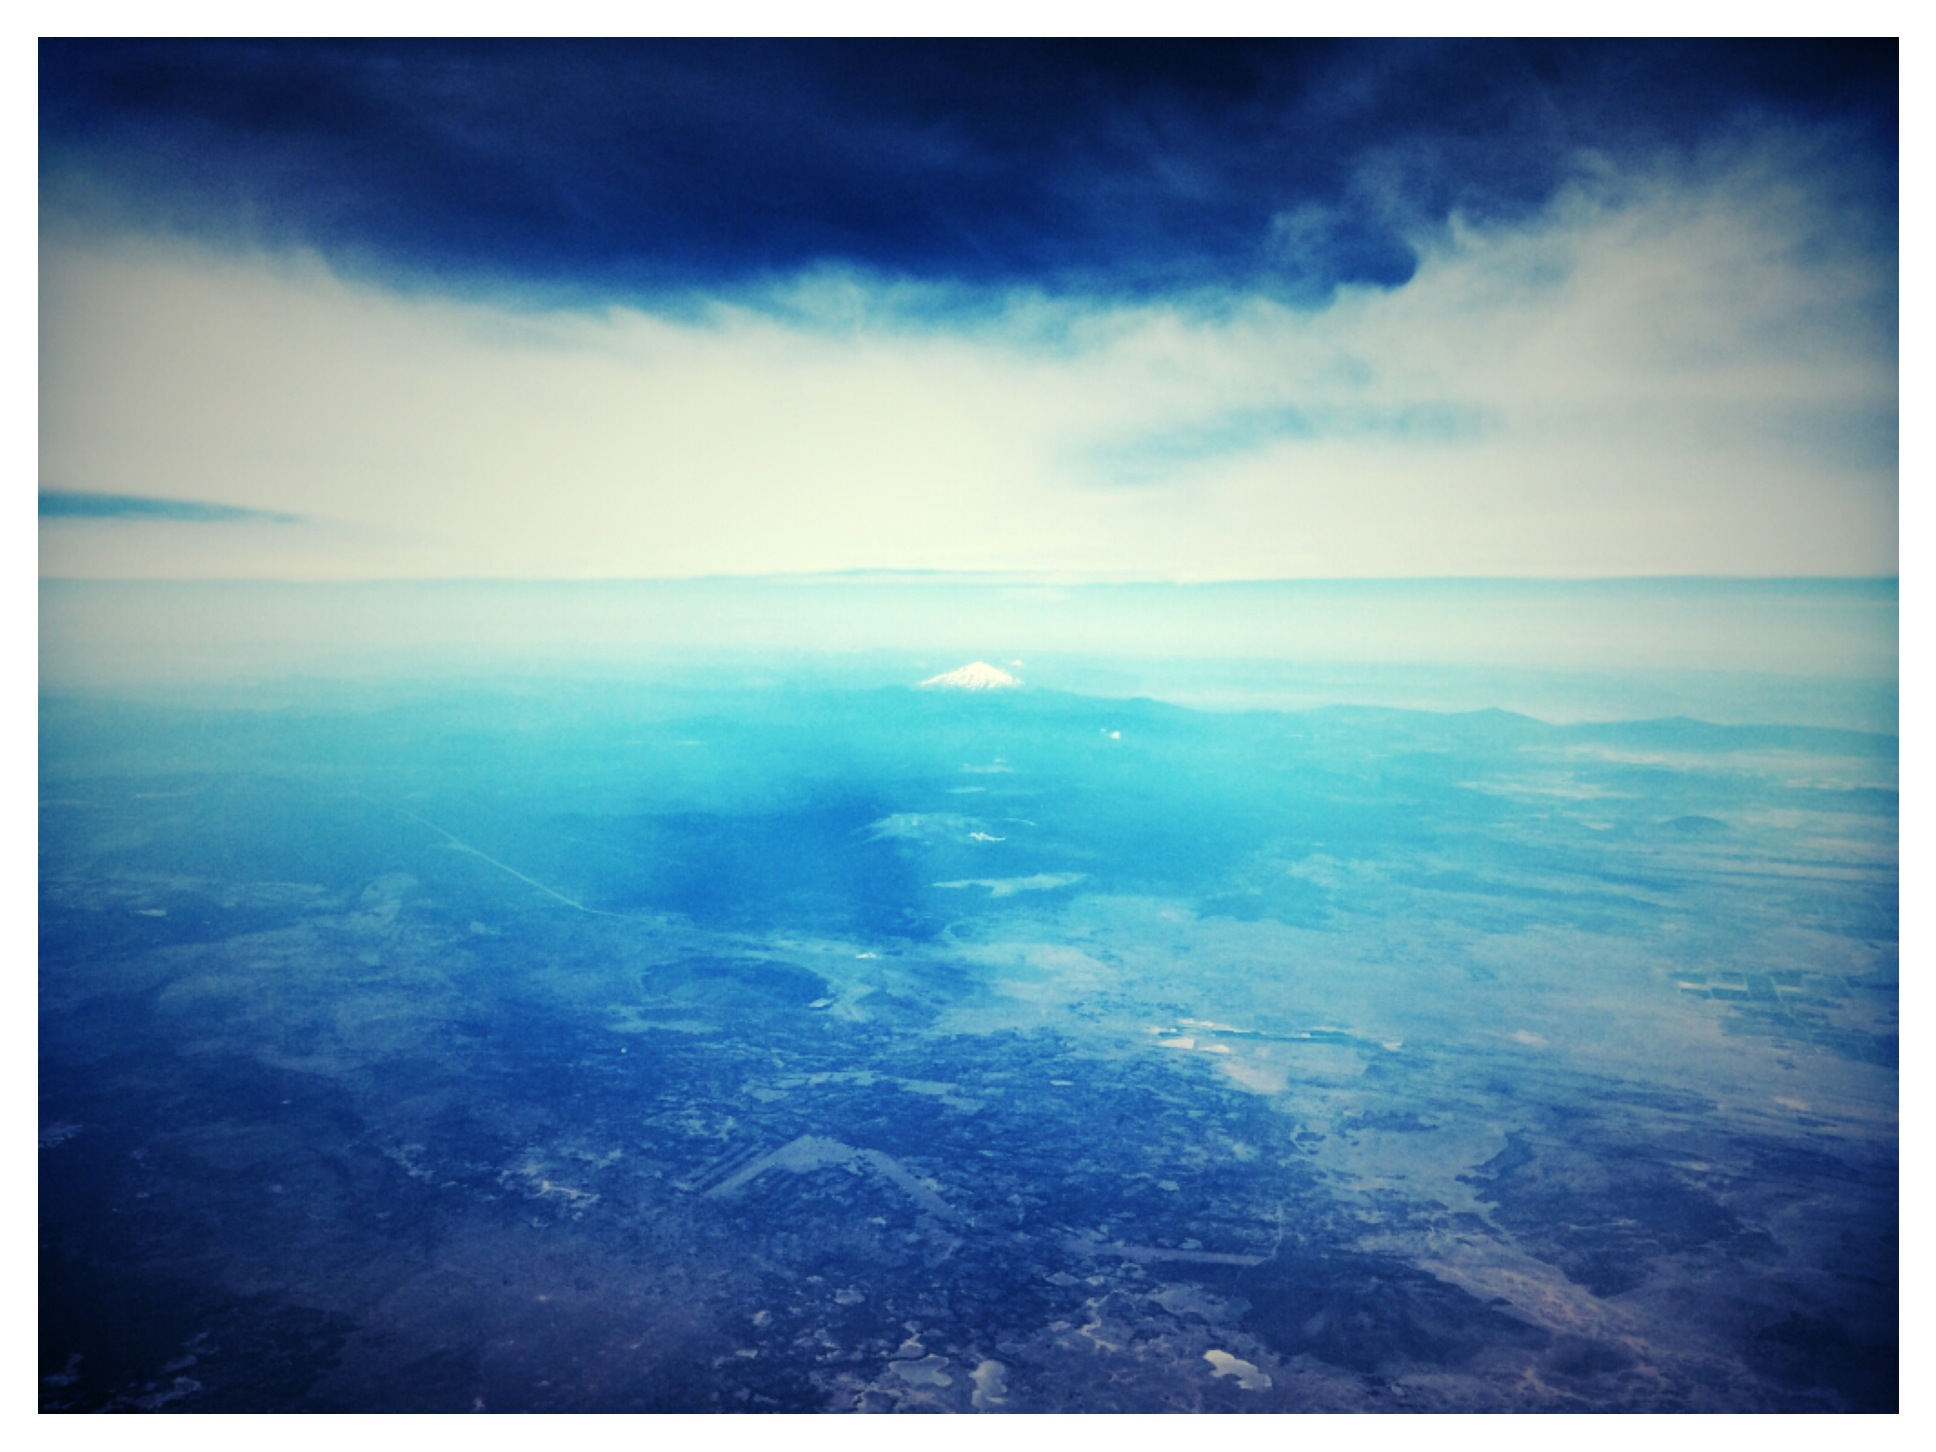 (somewhere above OR)